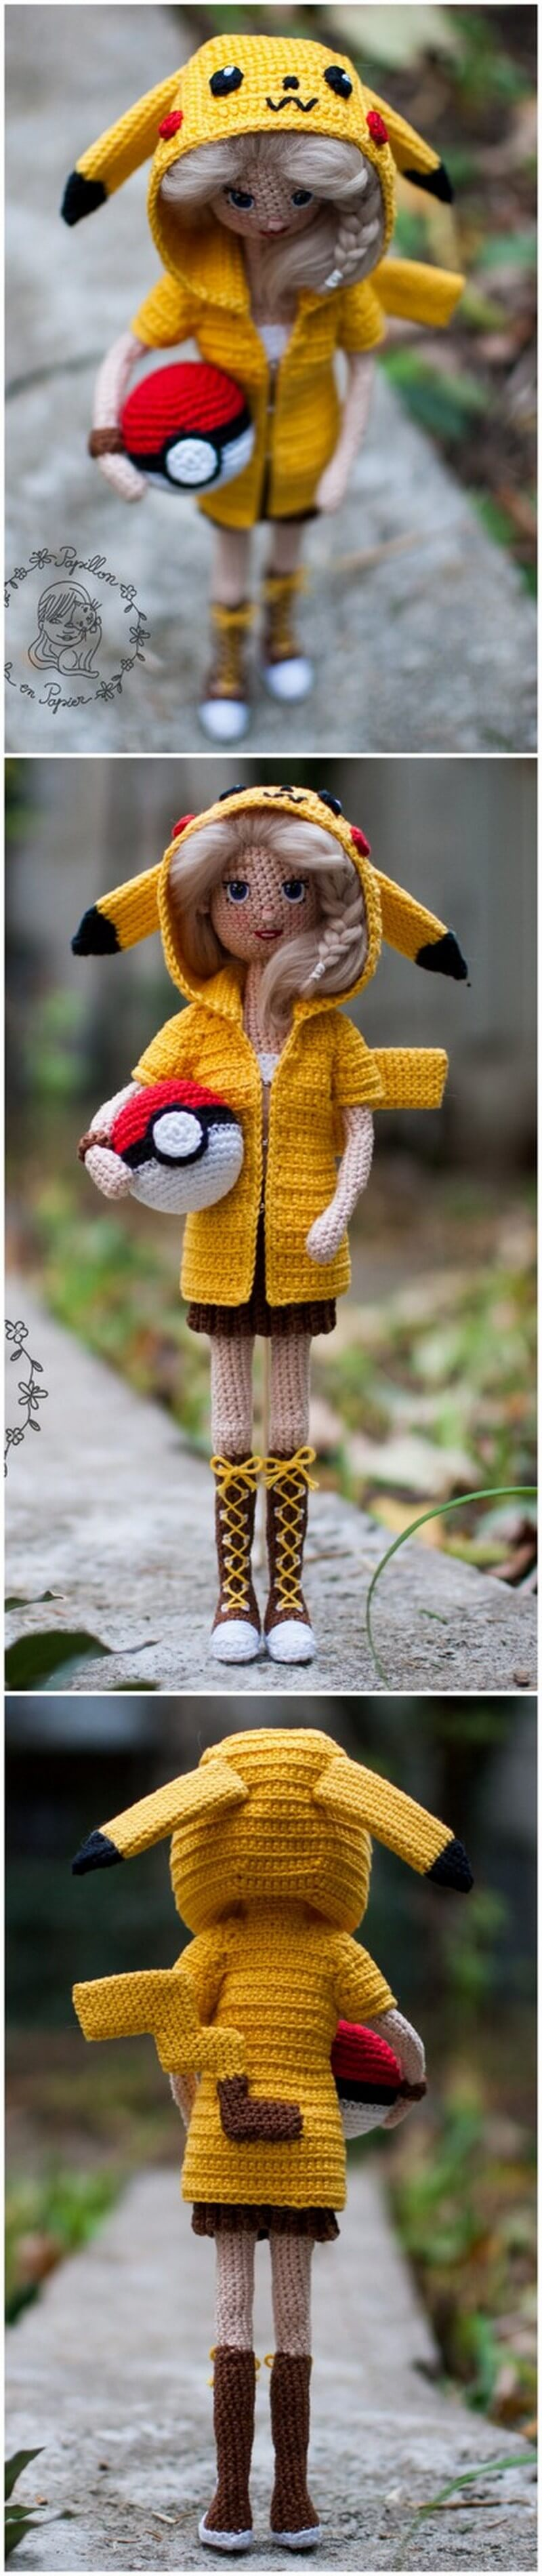 Crochet Amigurumi Doll Pattern (9)